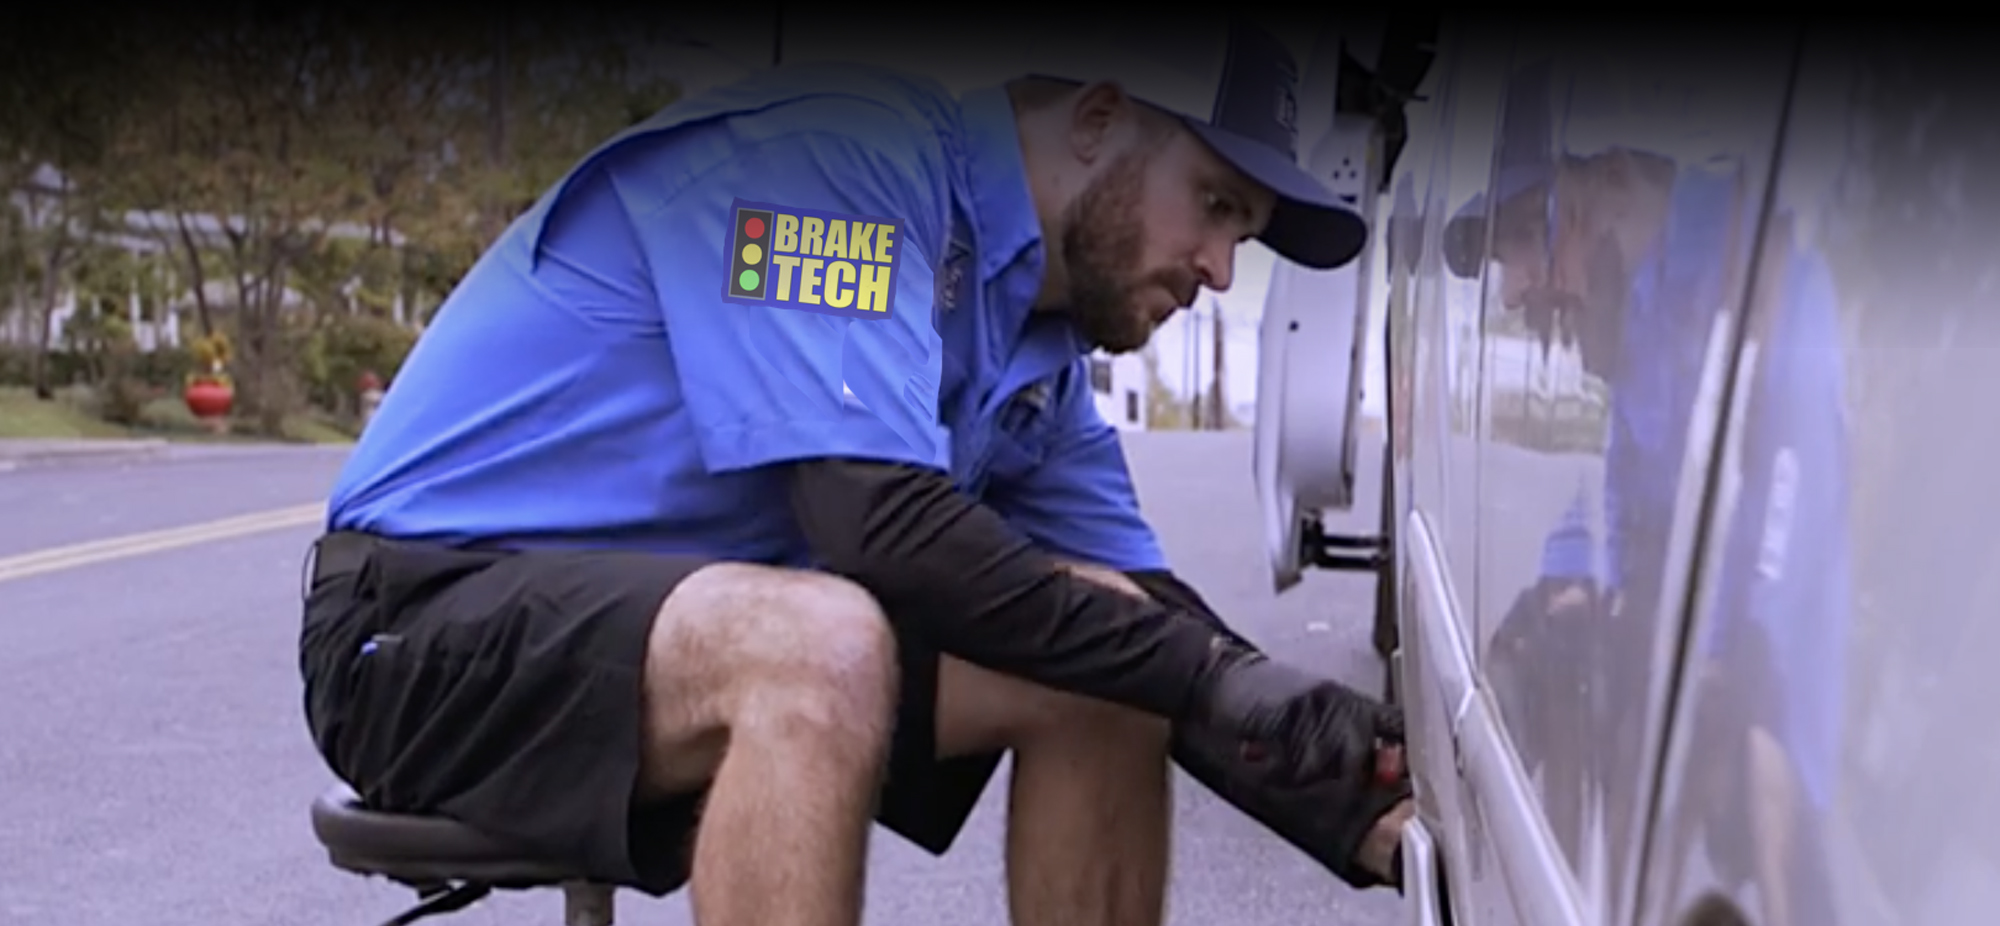 Brake Tech Mechanic working on a vehicle